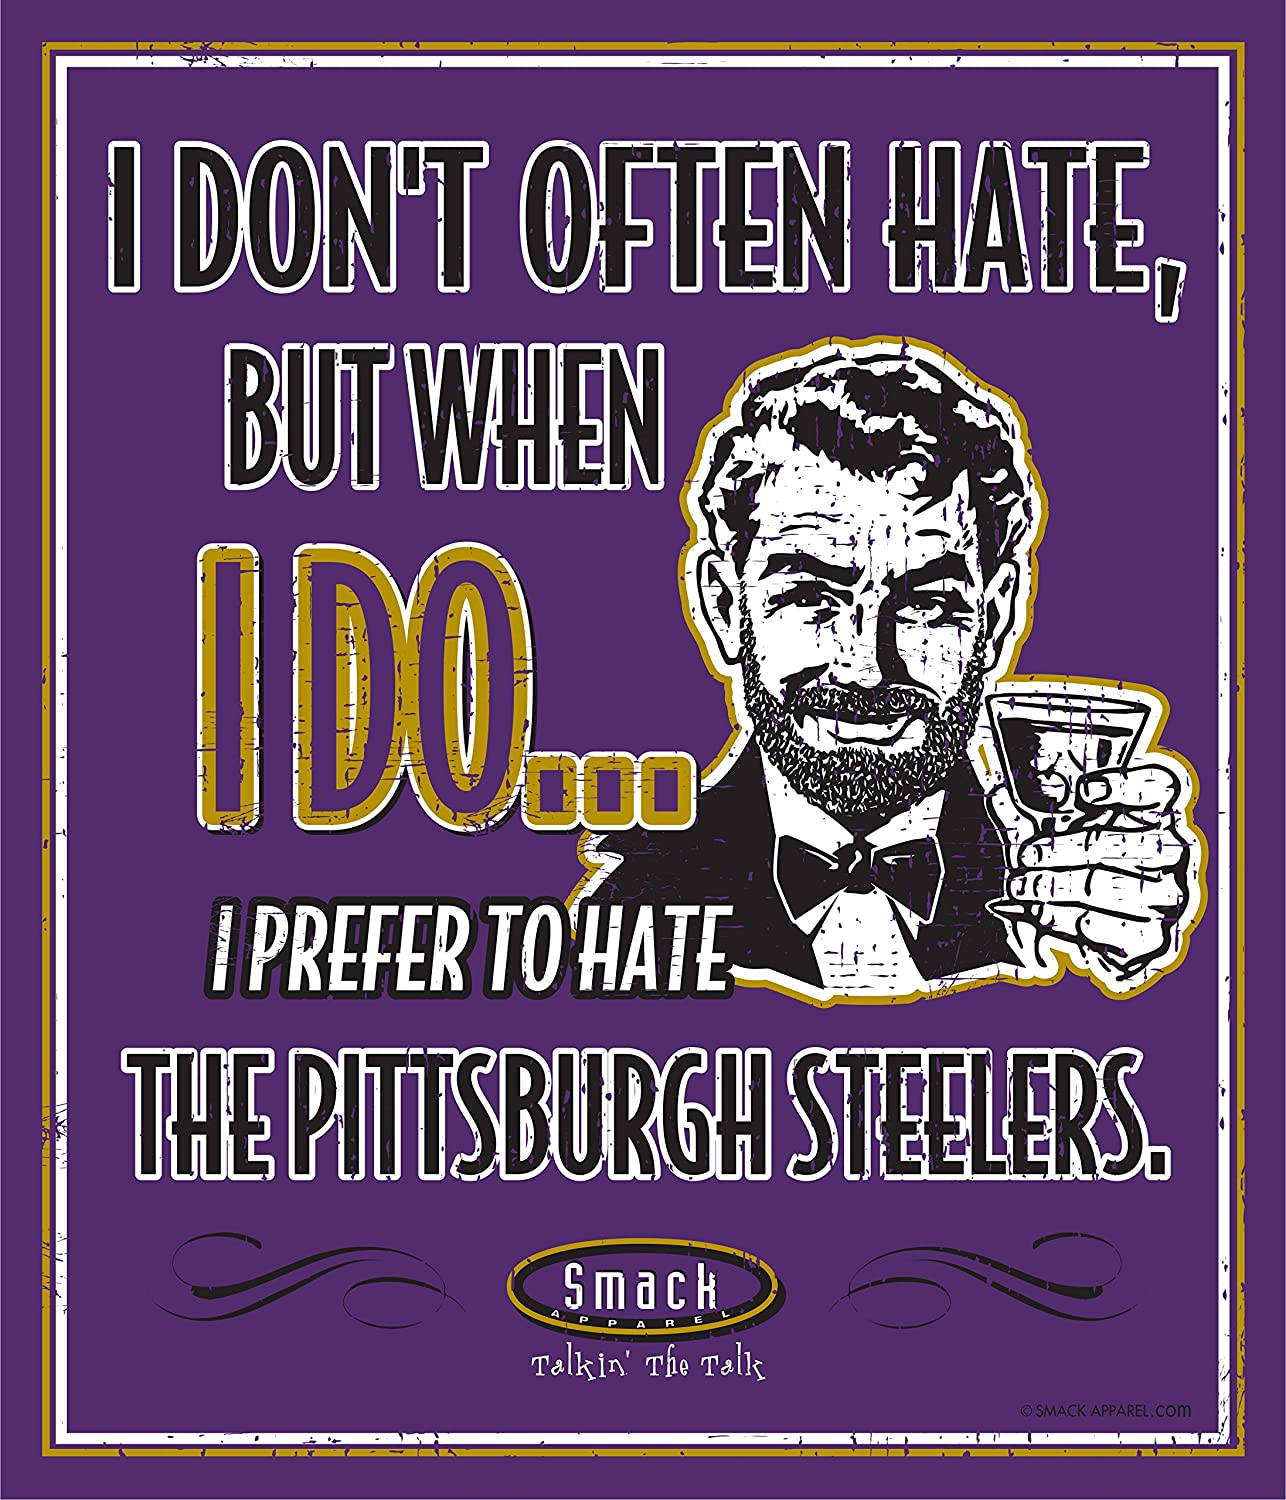 XS-2X Keep Calm and Hate The Steelers Smack Apparel Baltimore Football Fans Purple Ladies T-Shirt